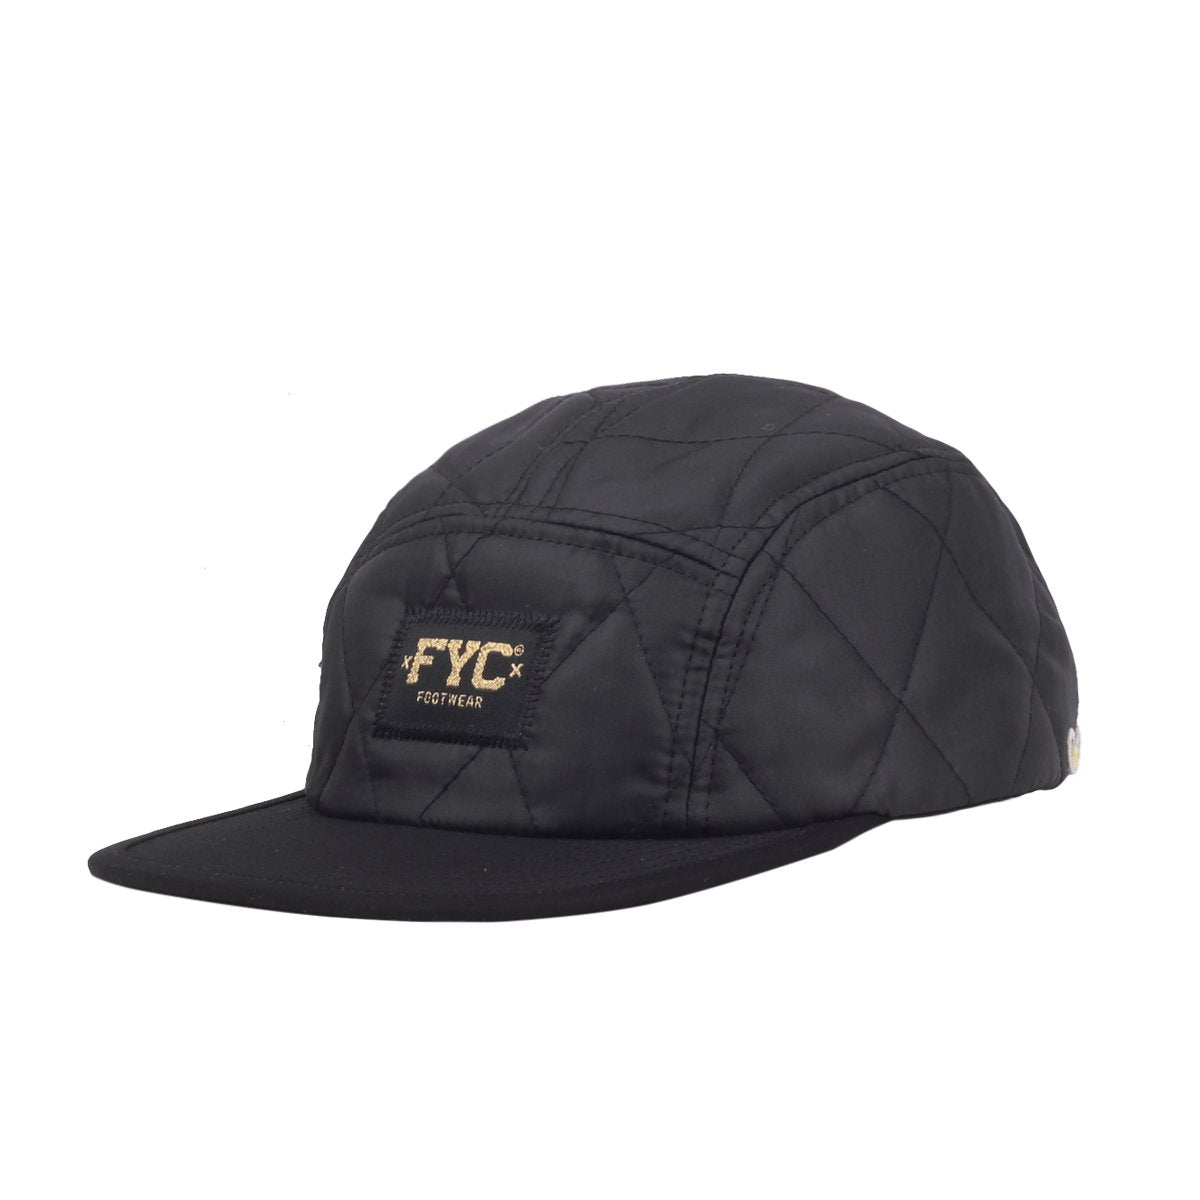 5 Panel Cap Plush Black